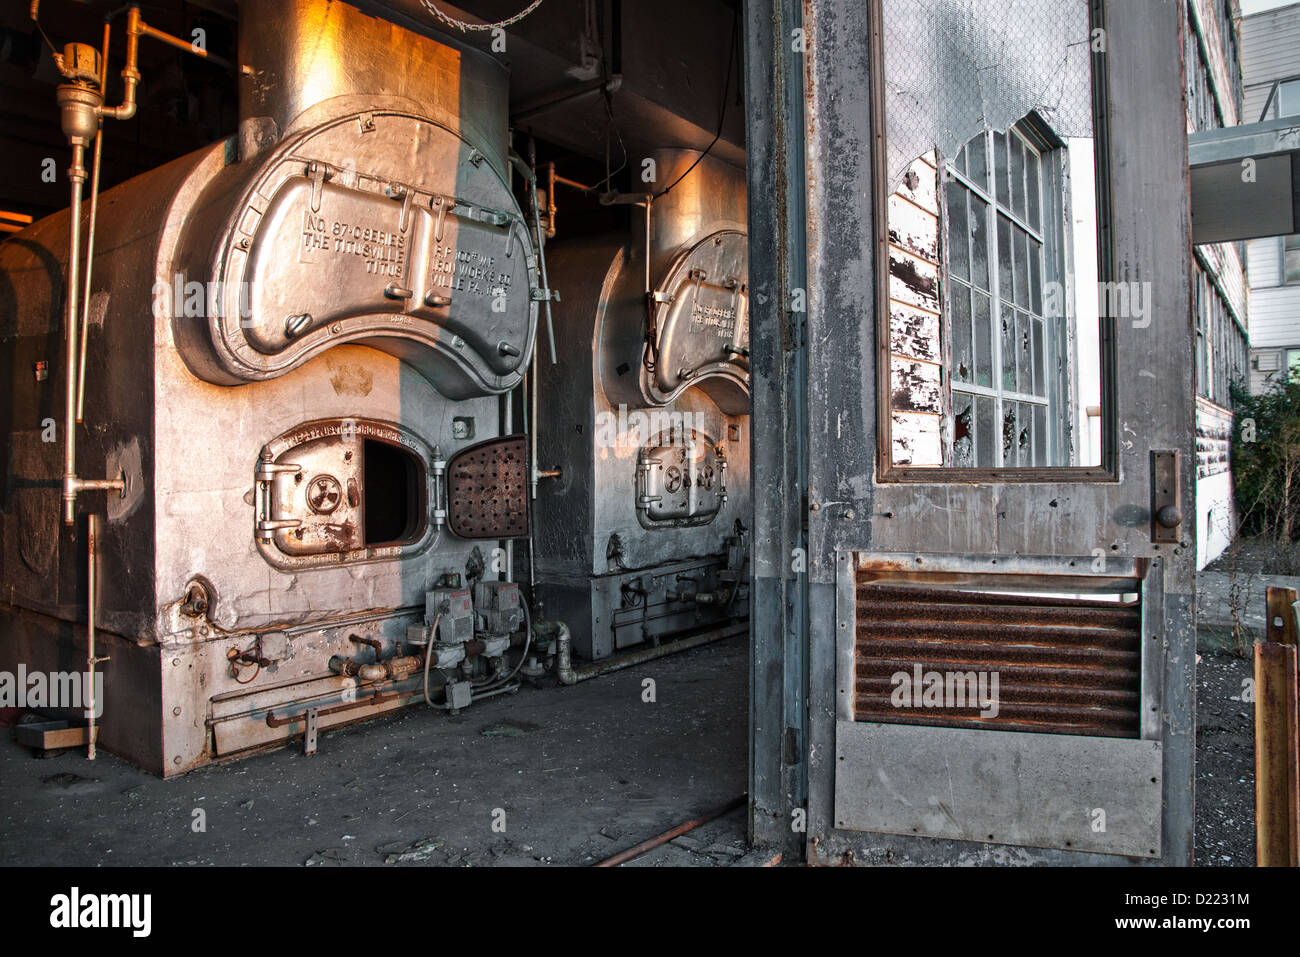 Open door leads to vintage boiler amid broken windows at the Mare Island Naval Shipyard. & Open door leads to vintage boiler amid broken windows at the Mare ...